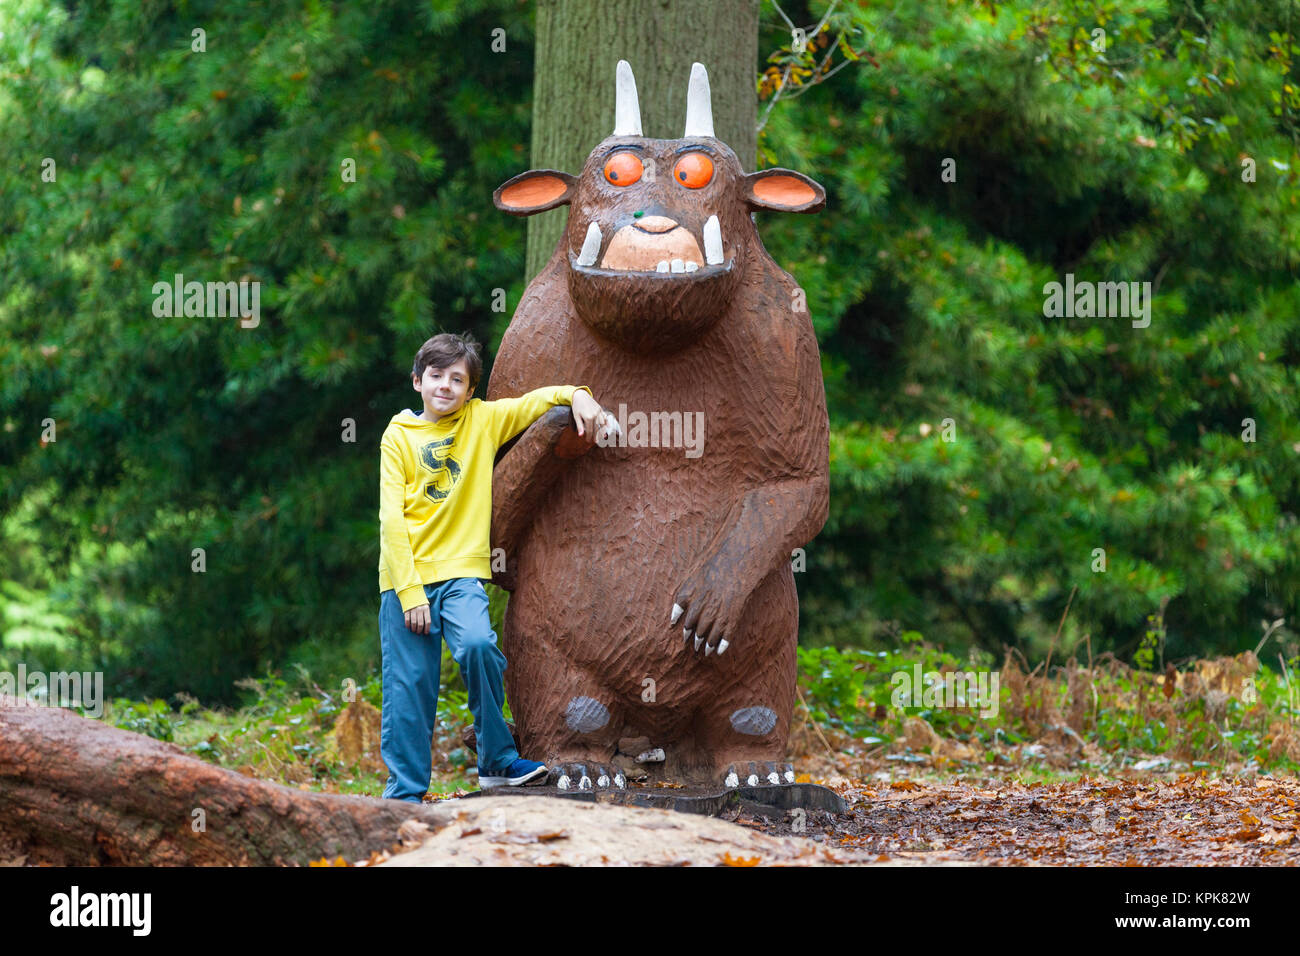 A boy posing with the gruffalo at the Bedgebury National Pinetum at Bedgebury, Kent - Stock Image